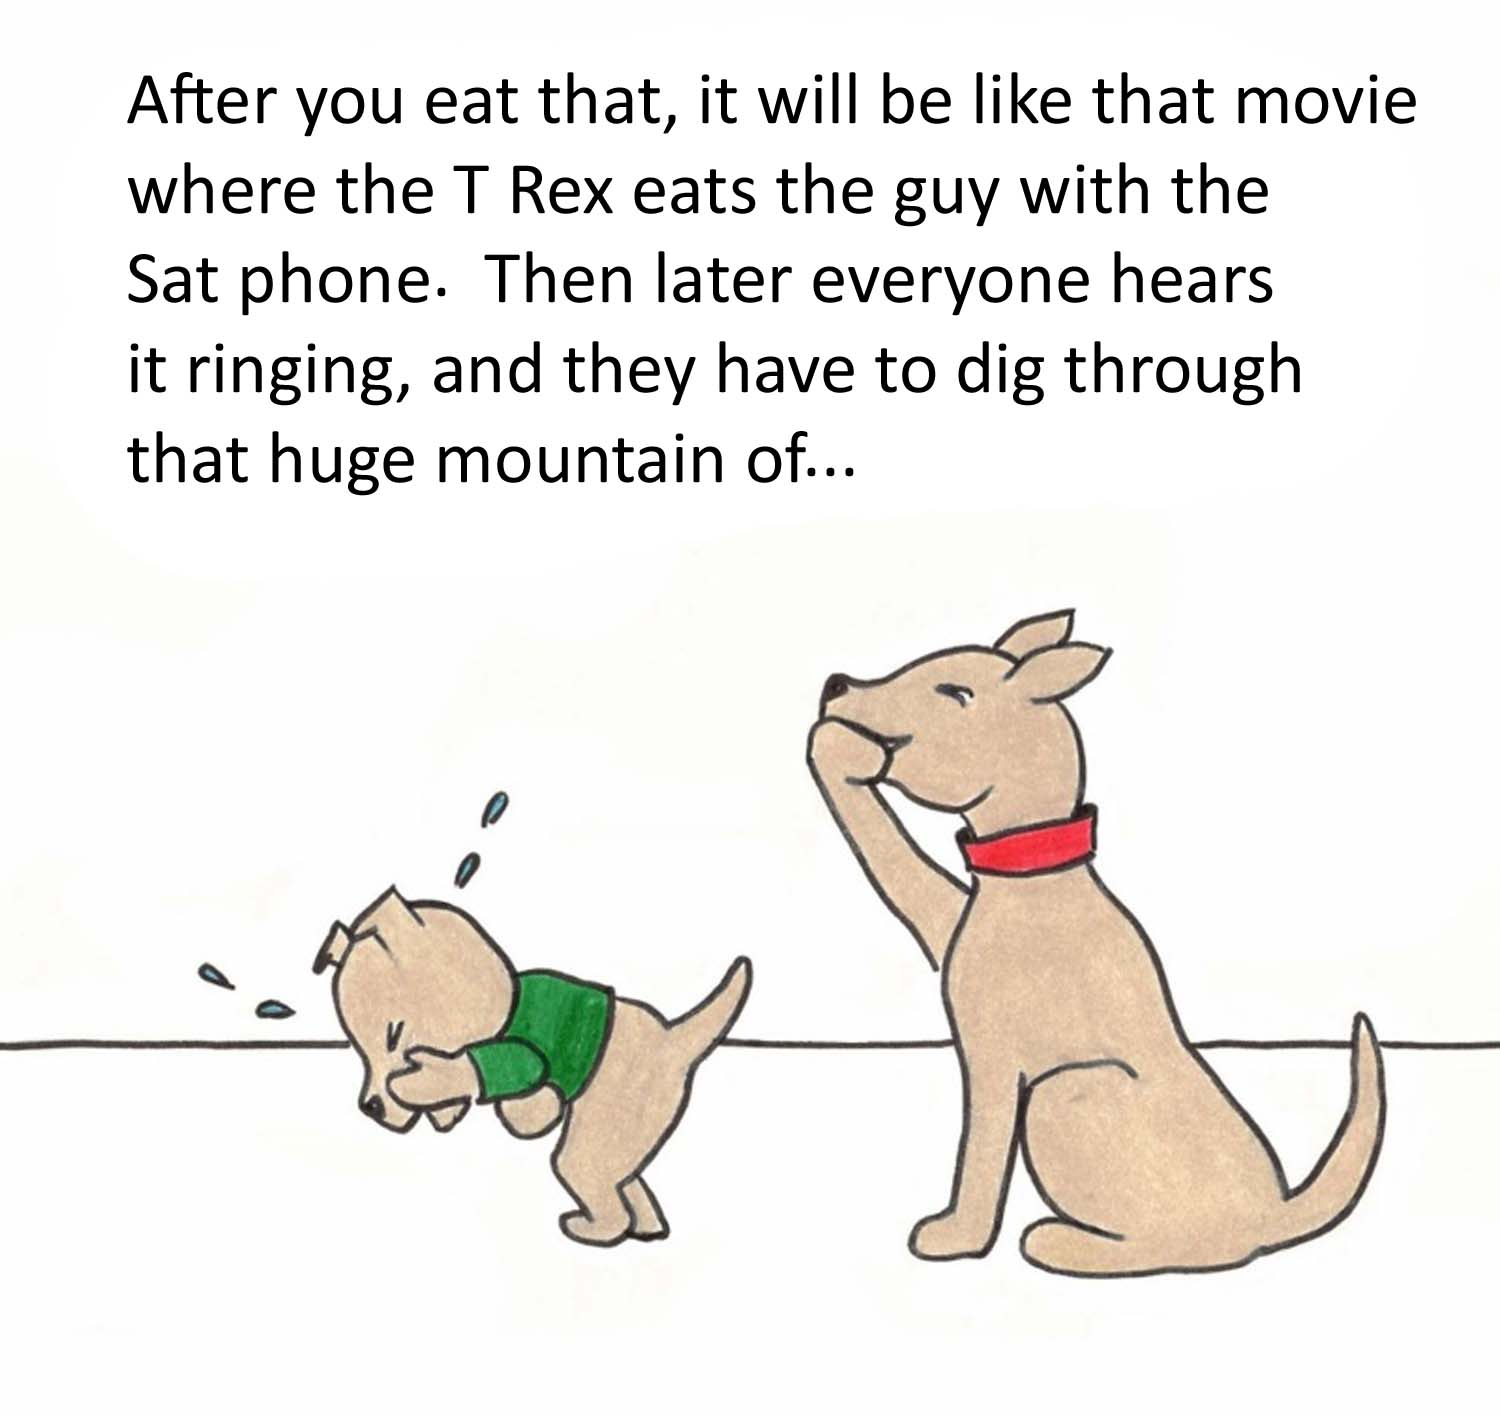 After you eat that, it will be like that movie where the T Rex eats the guy with the Sat phone. Then later eeryone hears it ringing, and they have to dig through that huge mountain of....